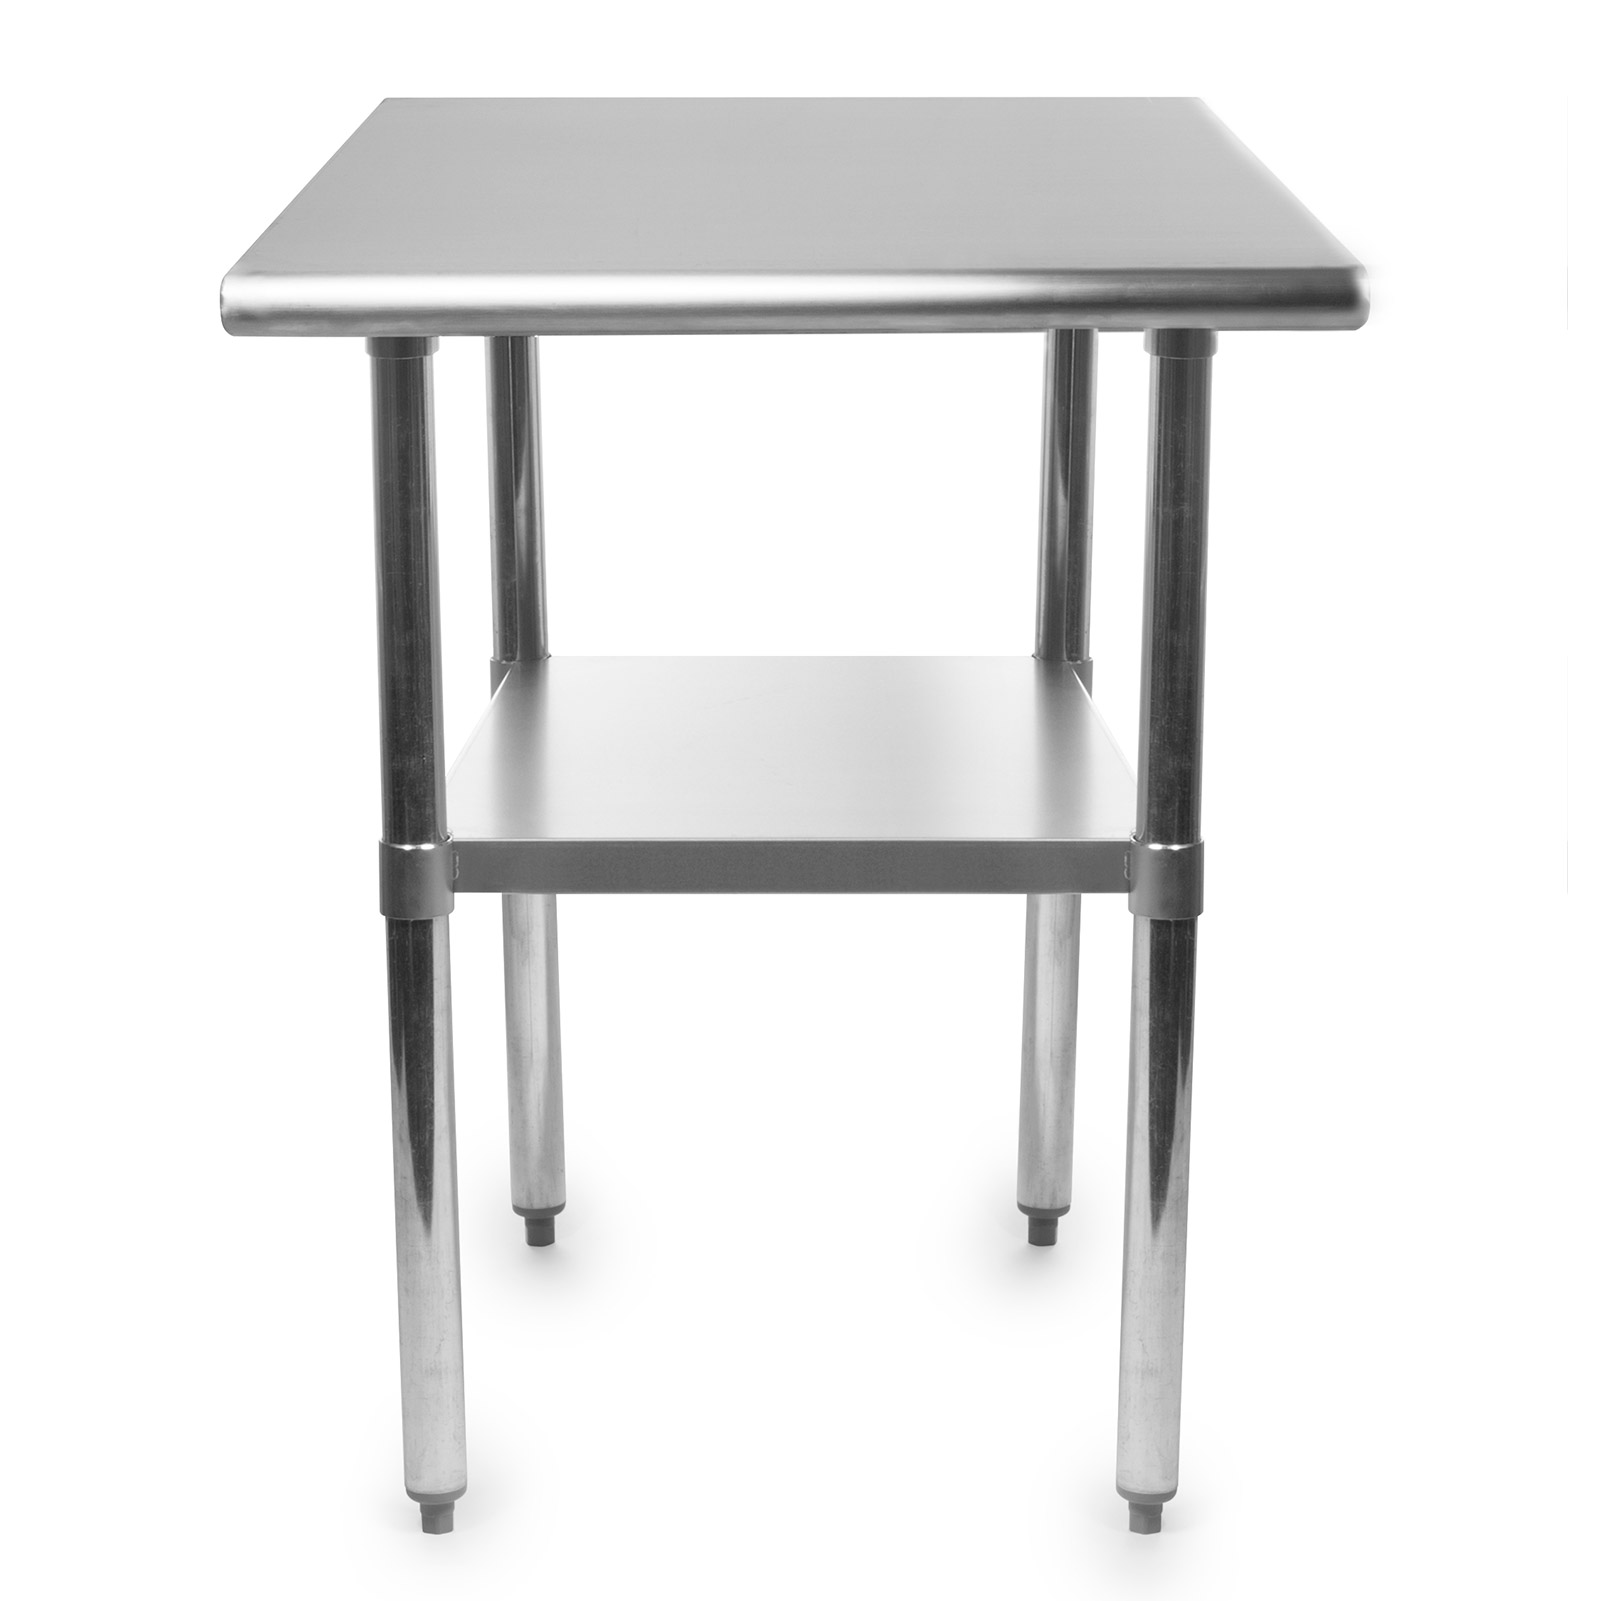 Table Kitchen Gridmann Nsf Stainless Steel Commercial Kitchen Prep Work Table 60 In X 30 In